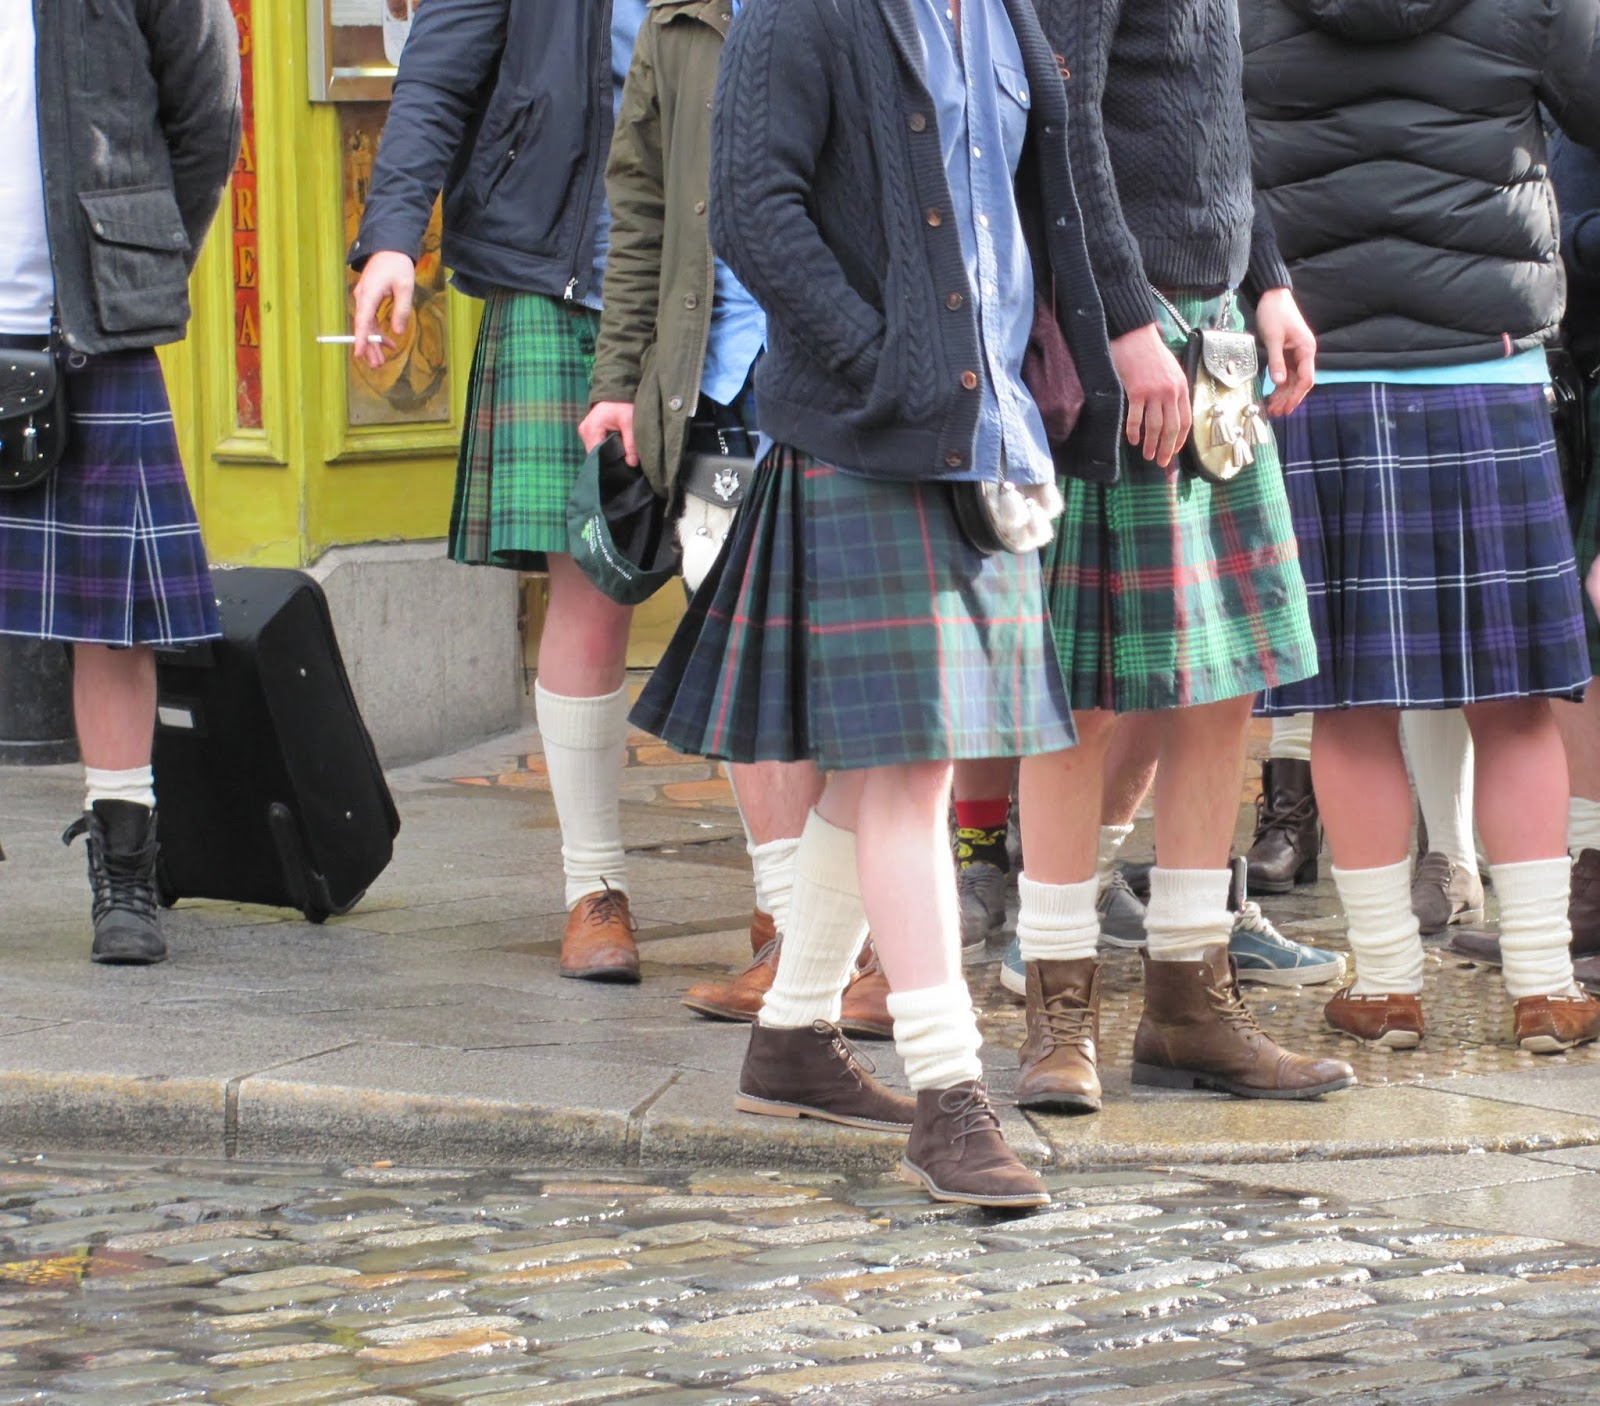 Scotsmen in kilts in Temple Bar in Dublin